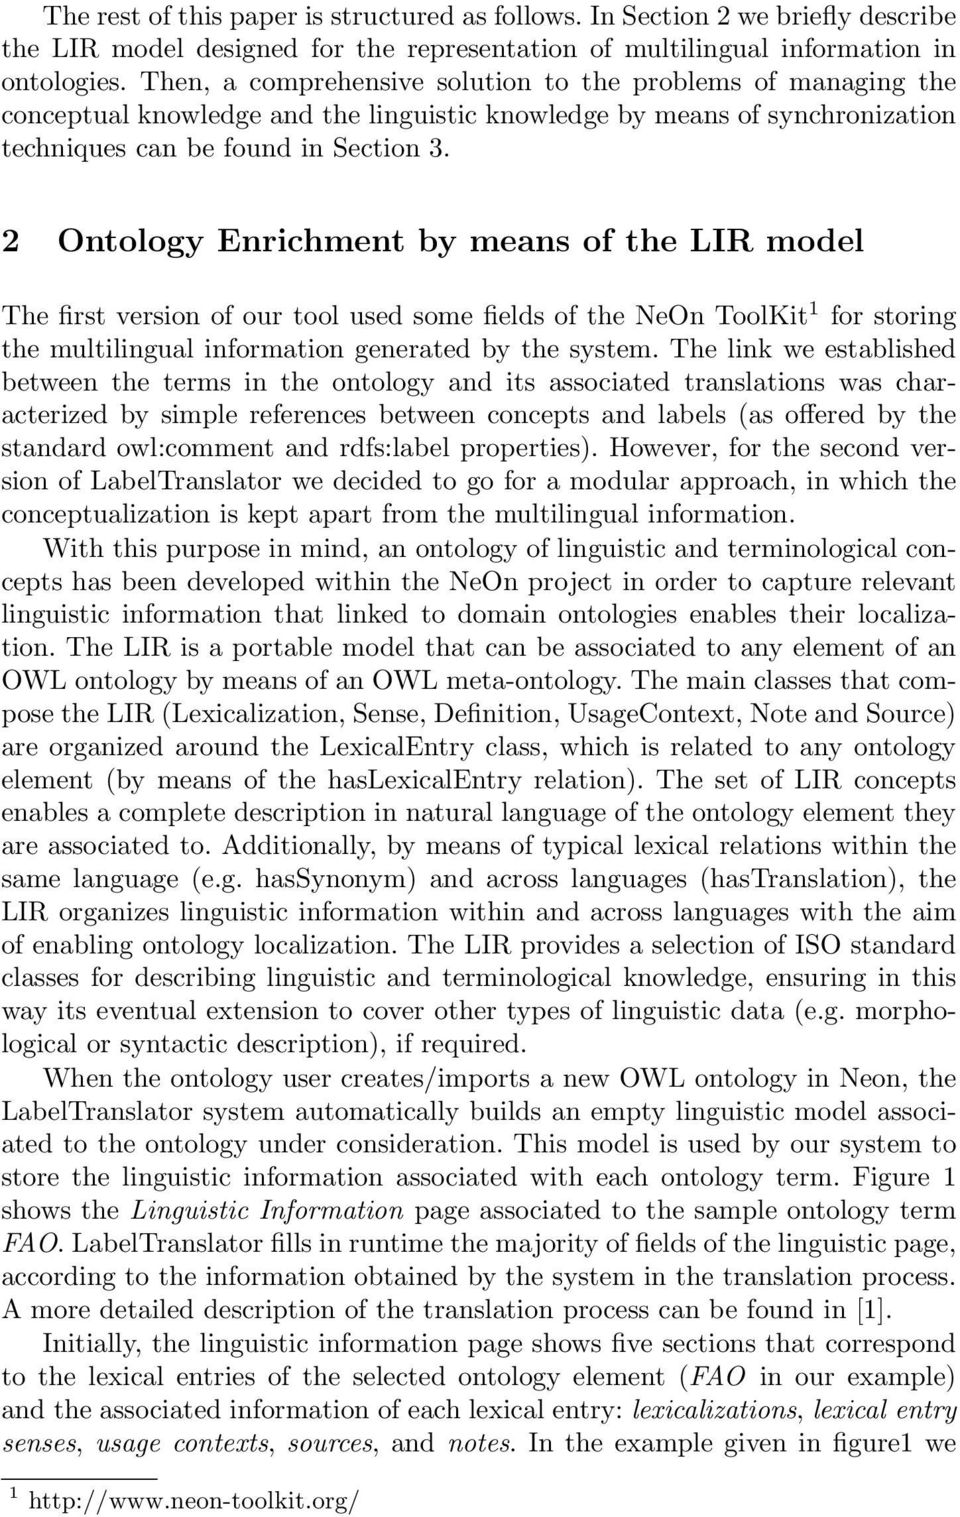 2 Ontology Enrichment by means of the LIR model The first version of our tool used some fields of the NeOn ToolKit 1 for storing the multilingual information generated by the system.